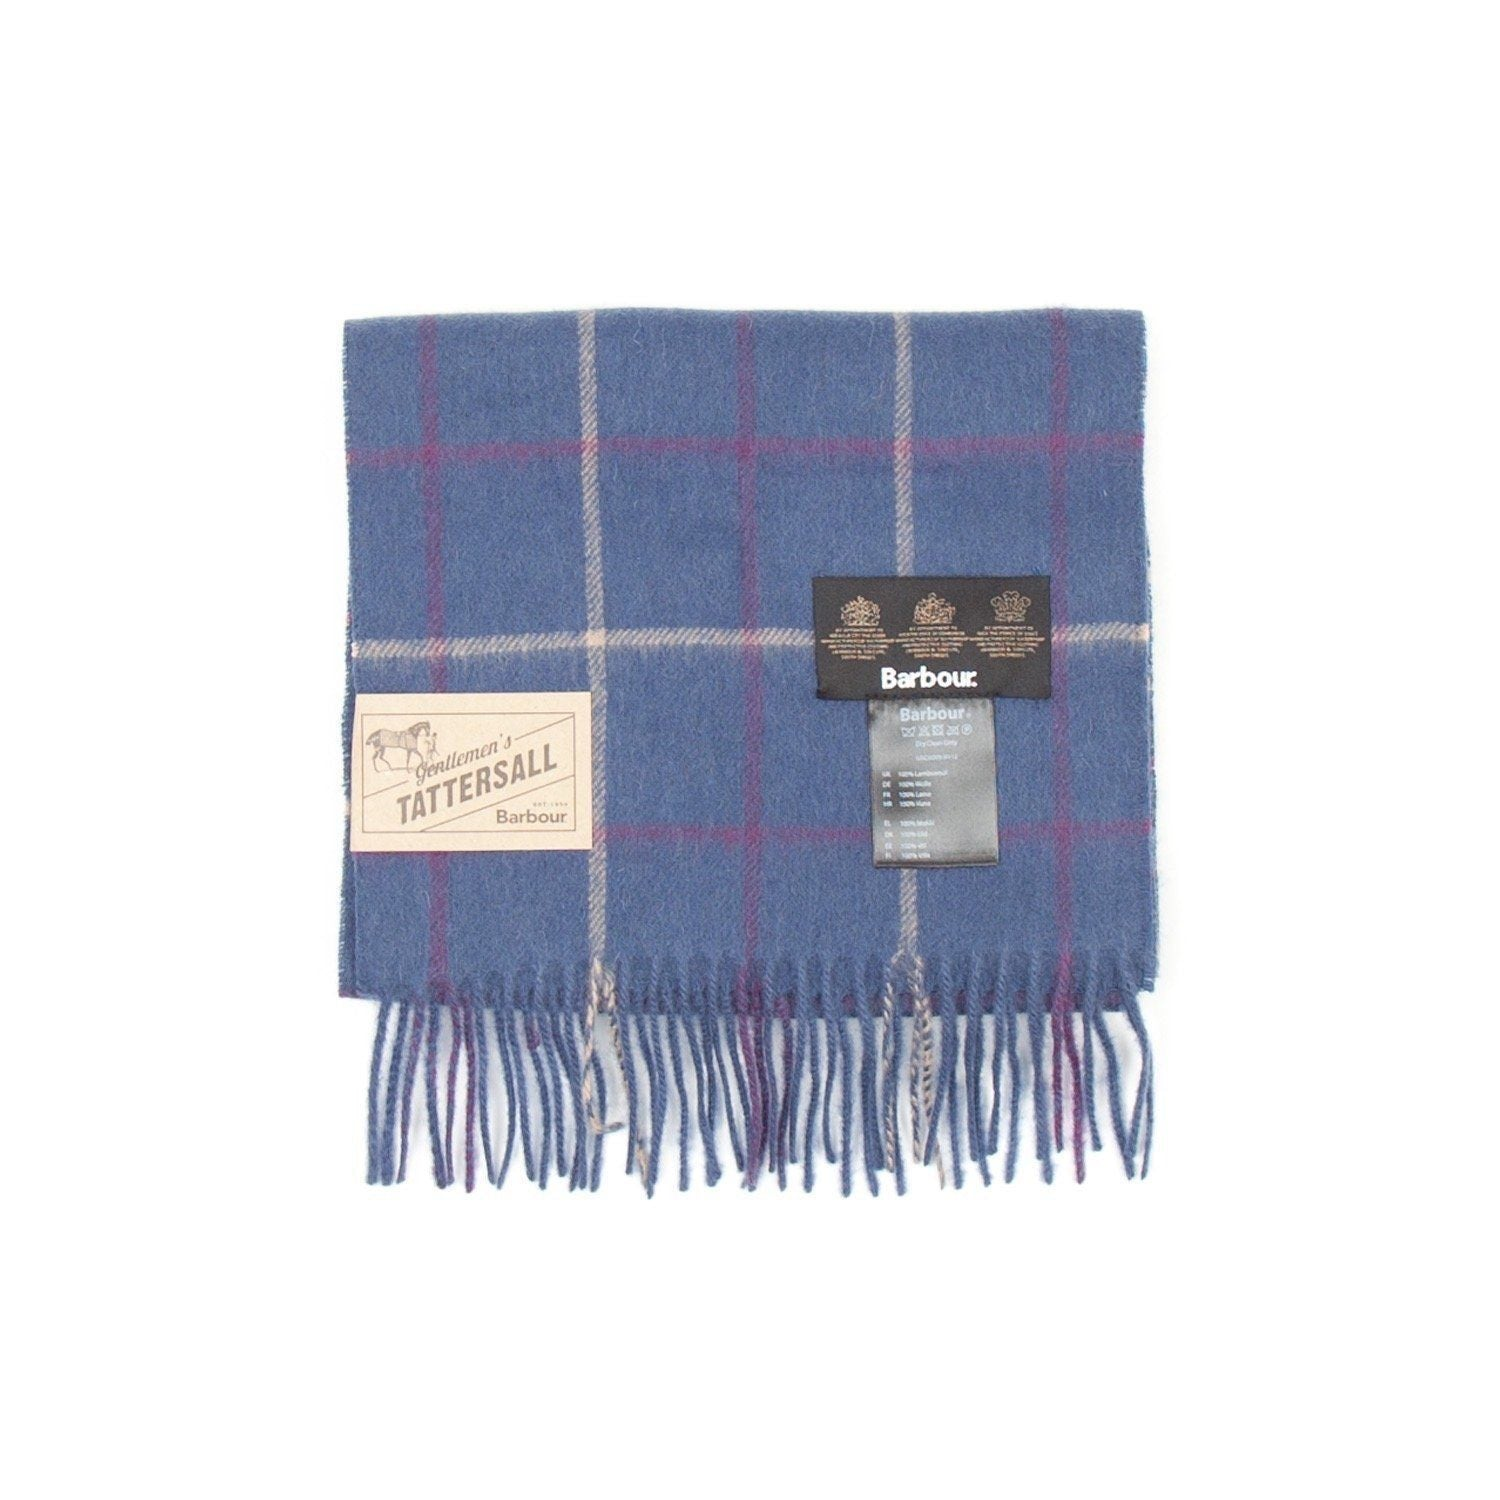 Barbour Tattersall Lambswool Scarf (Navy & Plum) 1